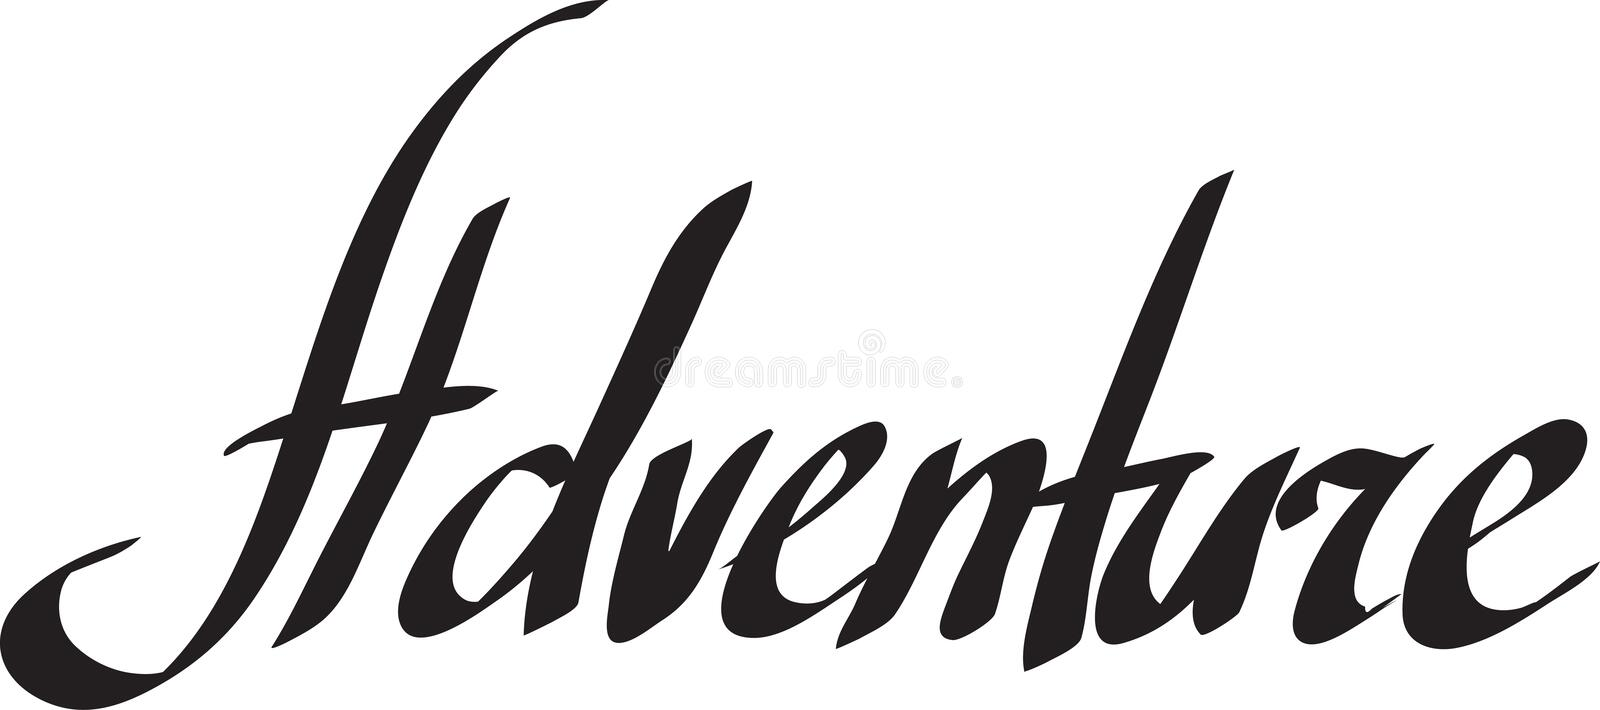 Adventure word isolated on white background vector illustration